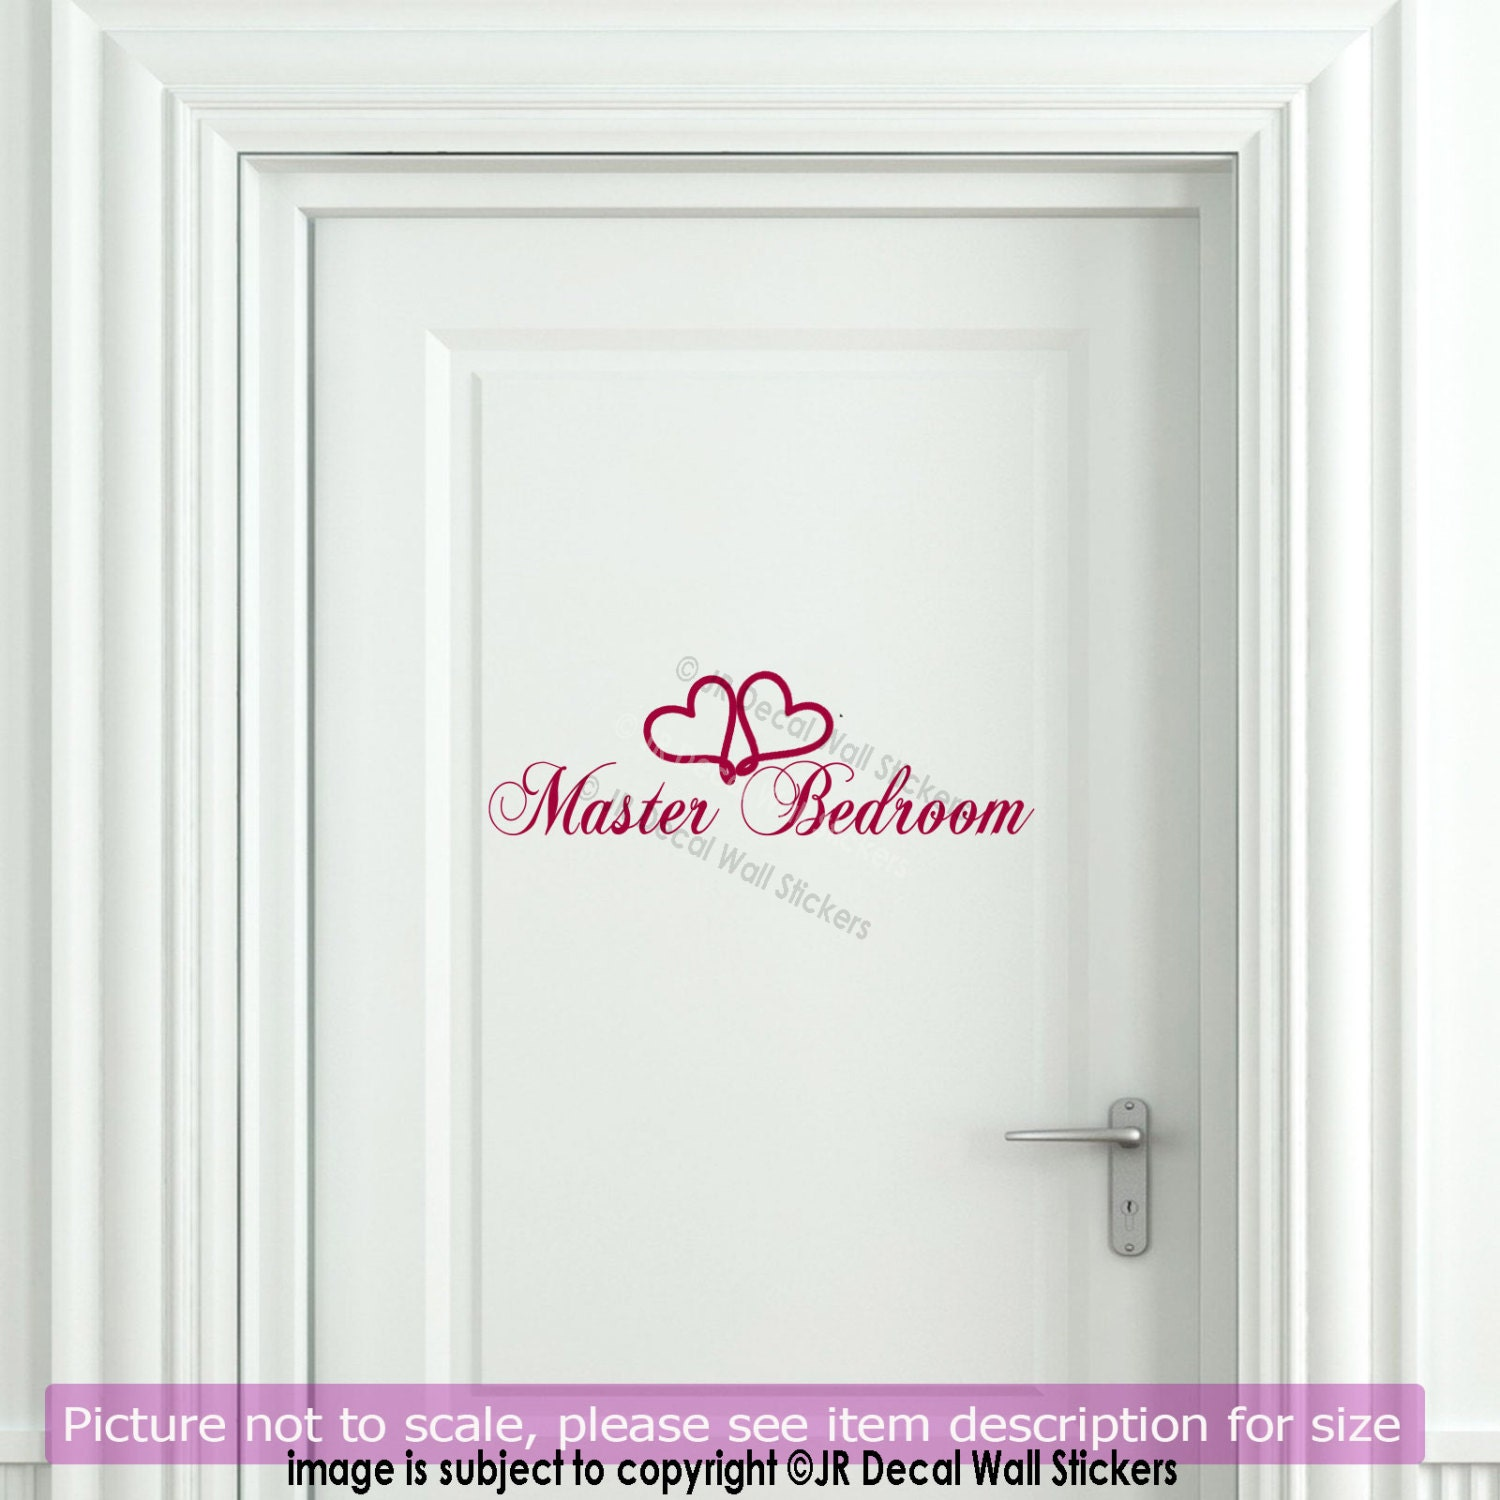 Master Bedroom Door Sign Home Decor Wall Decals Removable